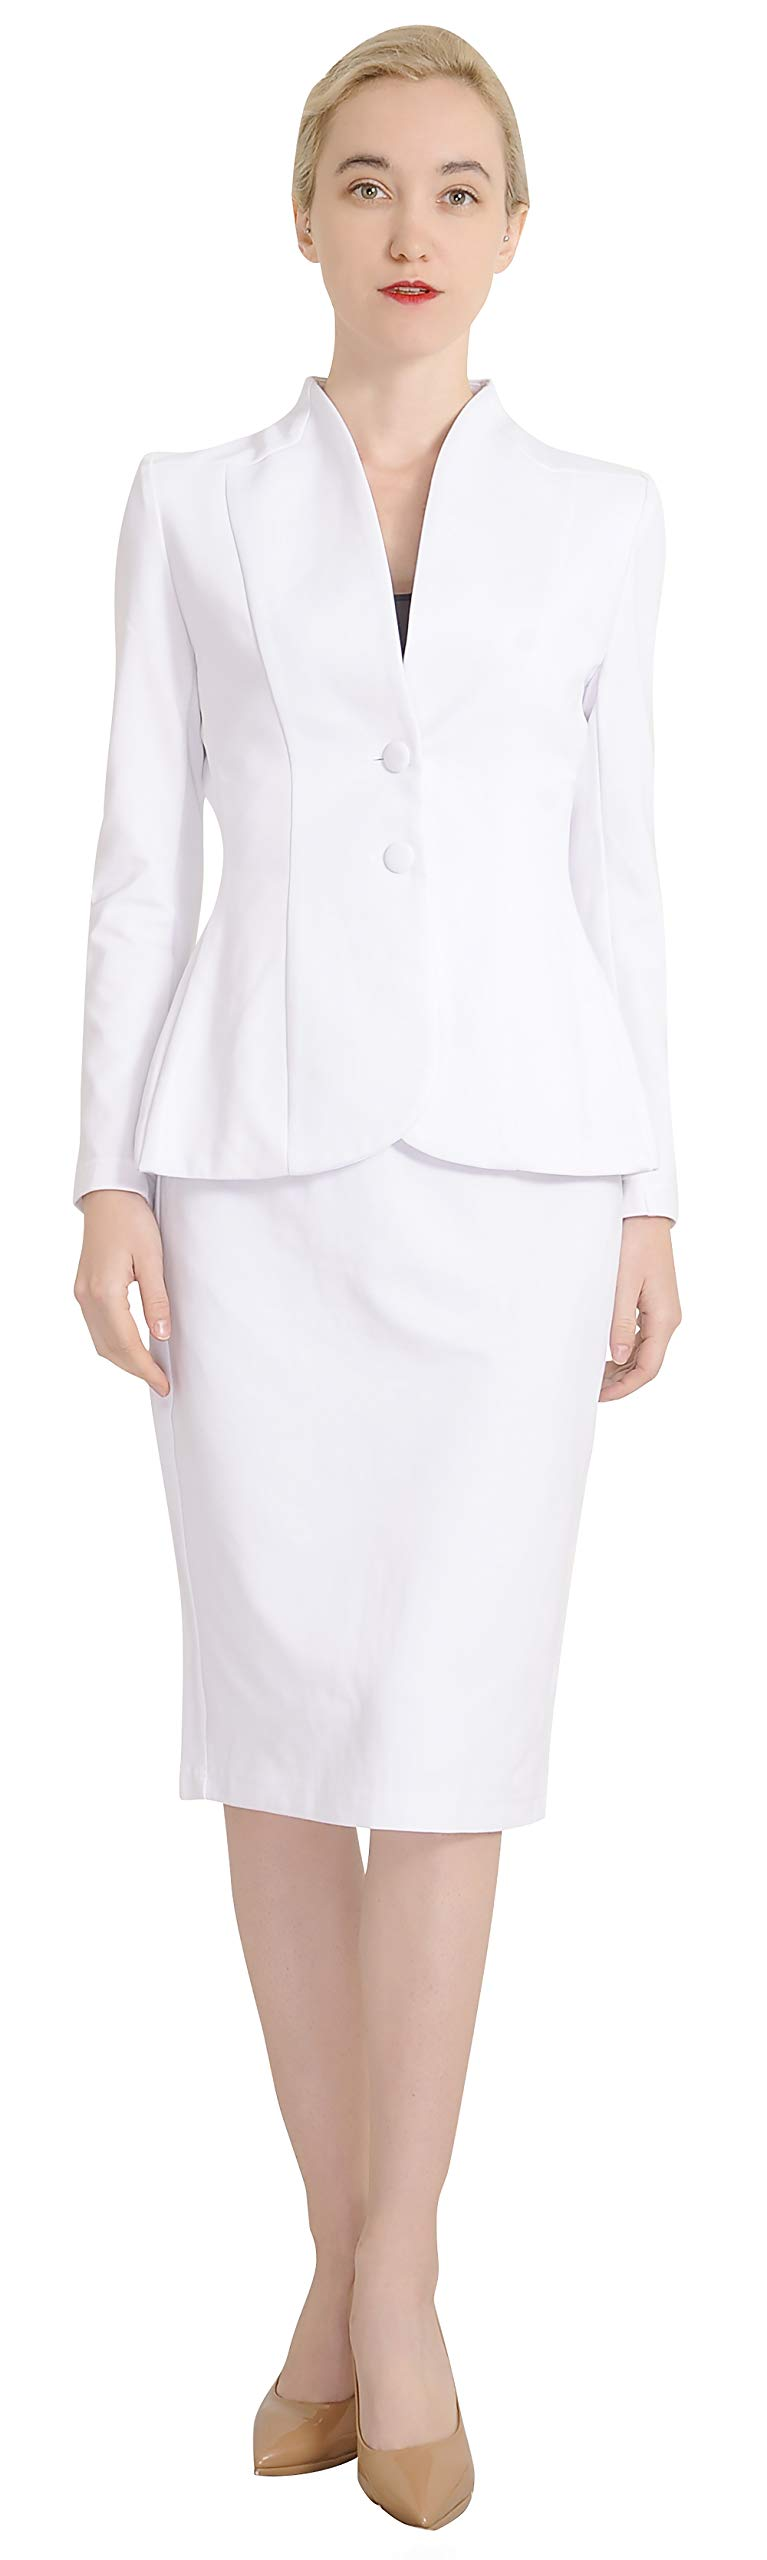 Marycrafts Women's Formal Office Business Work Jacket Skirt Suit Set 20 Off White